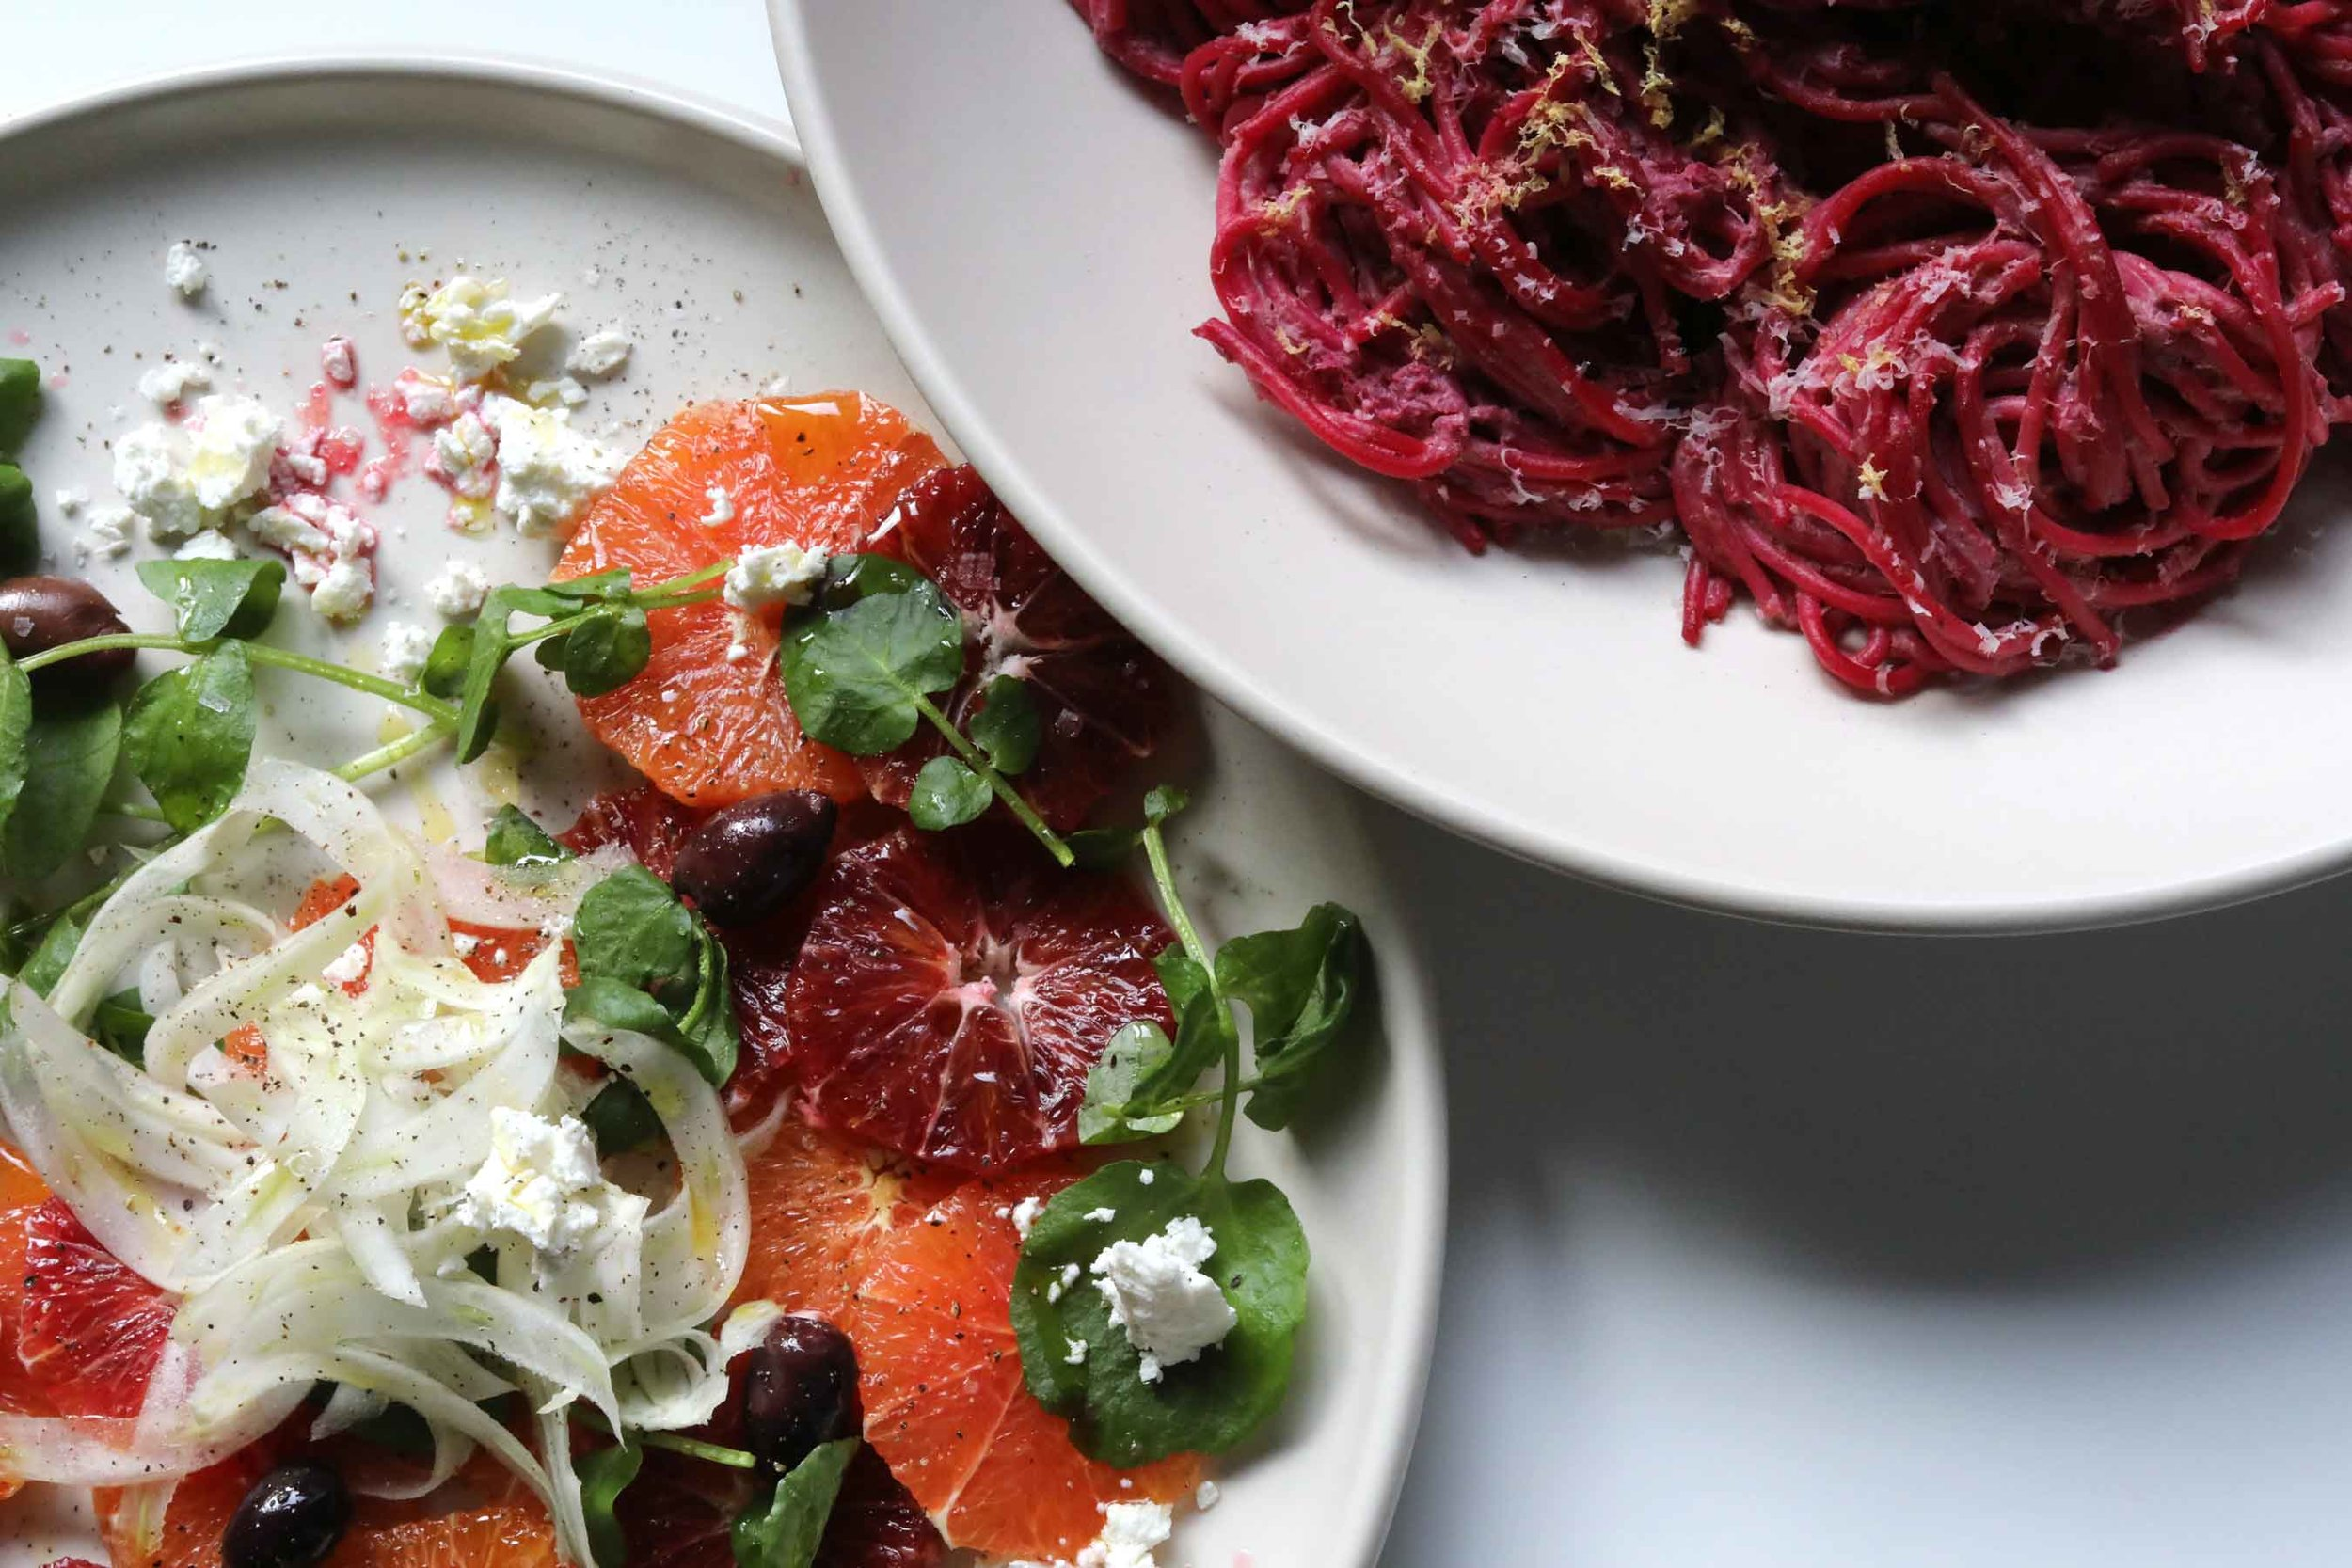 Thread & Whisk's Orange, Fennel, and Watercress salad served alongside The Impatient Foodie's Beet Ricotta Spaghetti . Vibrant color + Complementary flavors & textures = a delicious winter meal. A simple-to-make meal that looks and tastes restaurant quality.